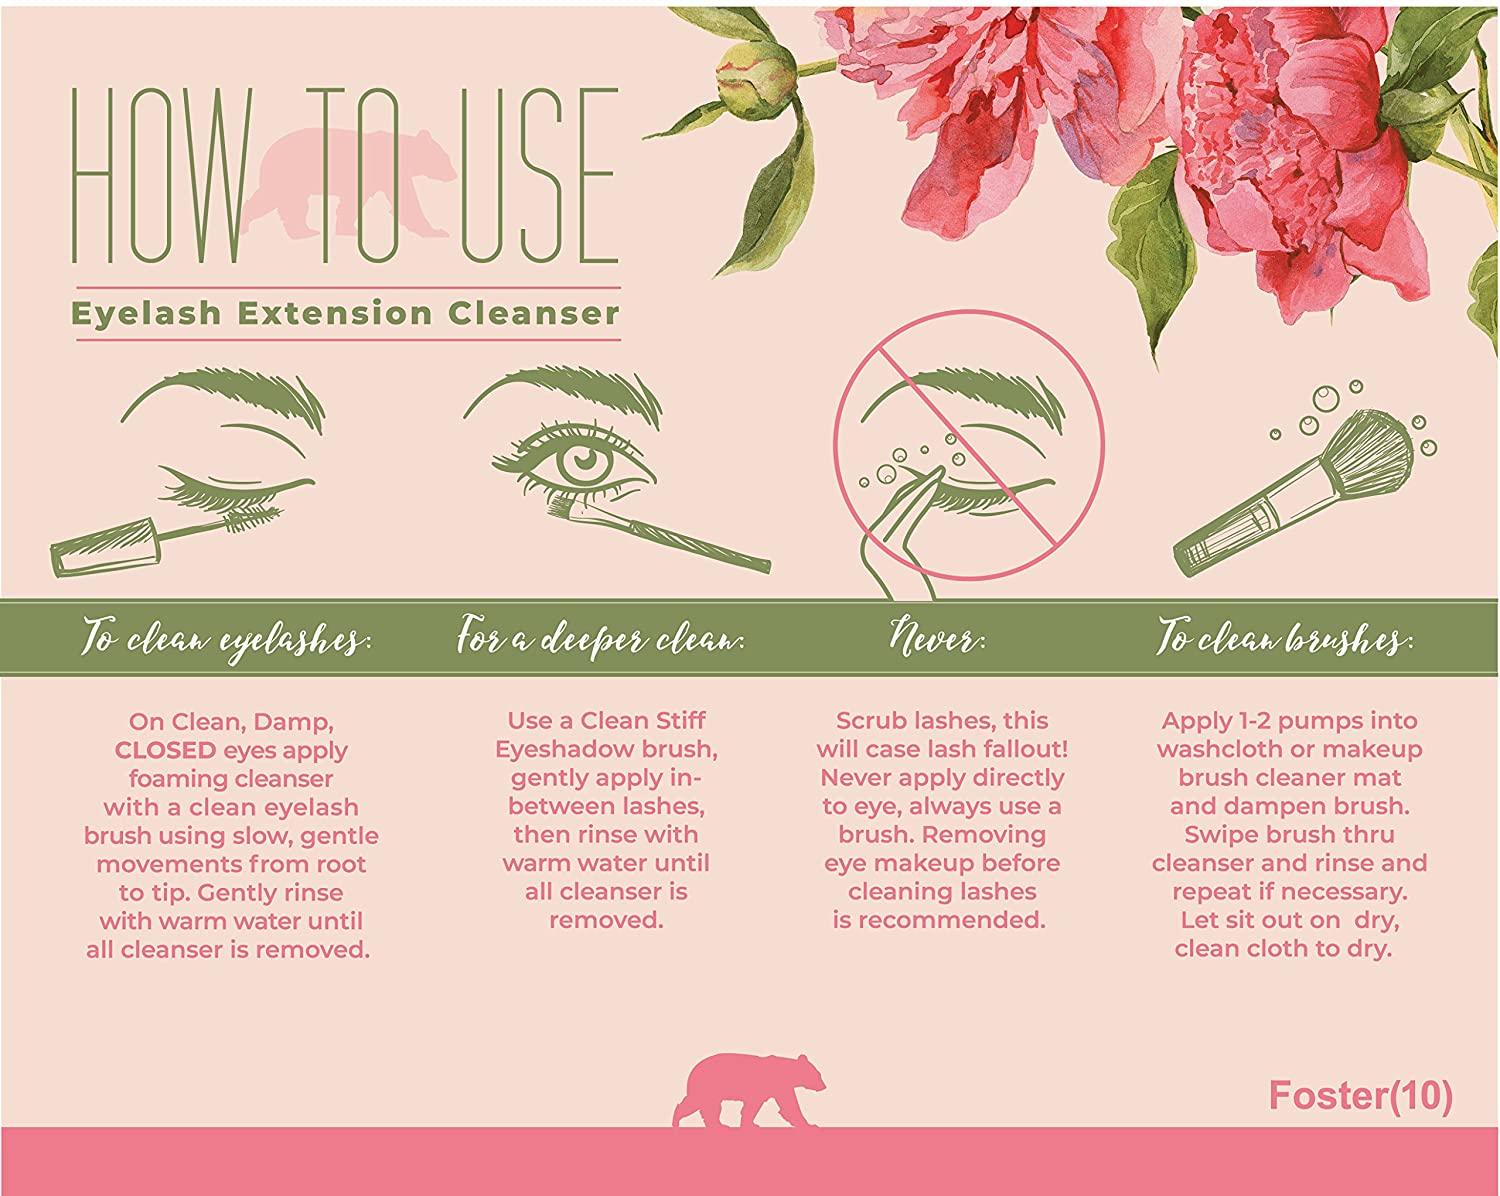 Amazon Foster10 Eyelash Extension Cleanser Foaming Safe For